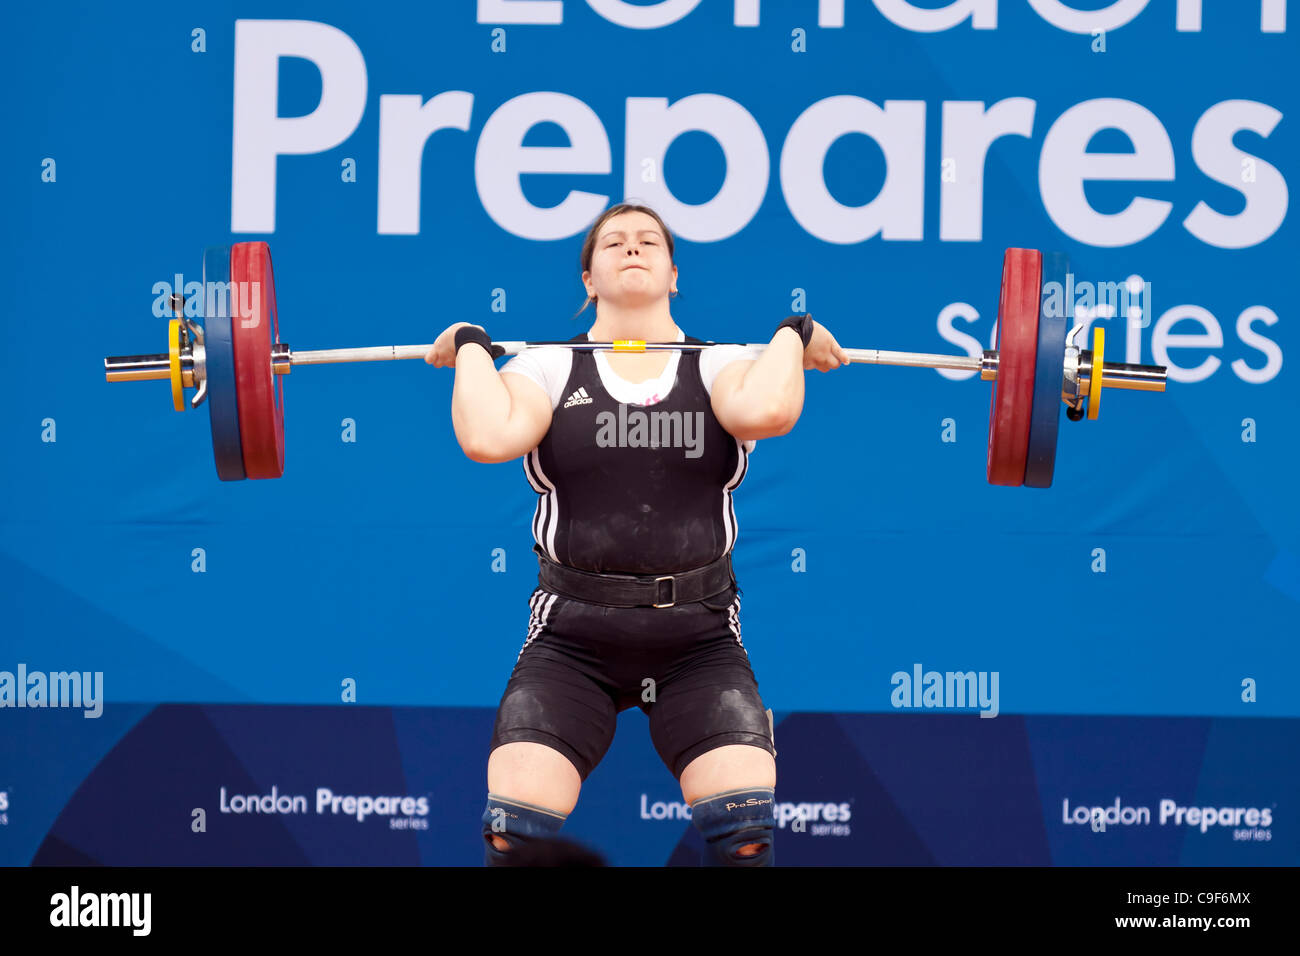 Krisztina MAGAT of Hungary Competing in the Group B, Women's +75kg, London Prepares Weightlifting International - Stock Image